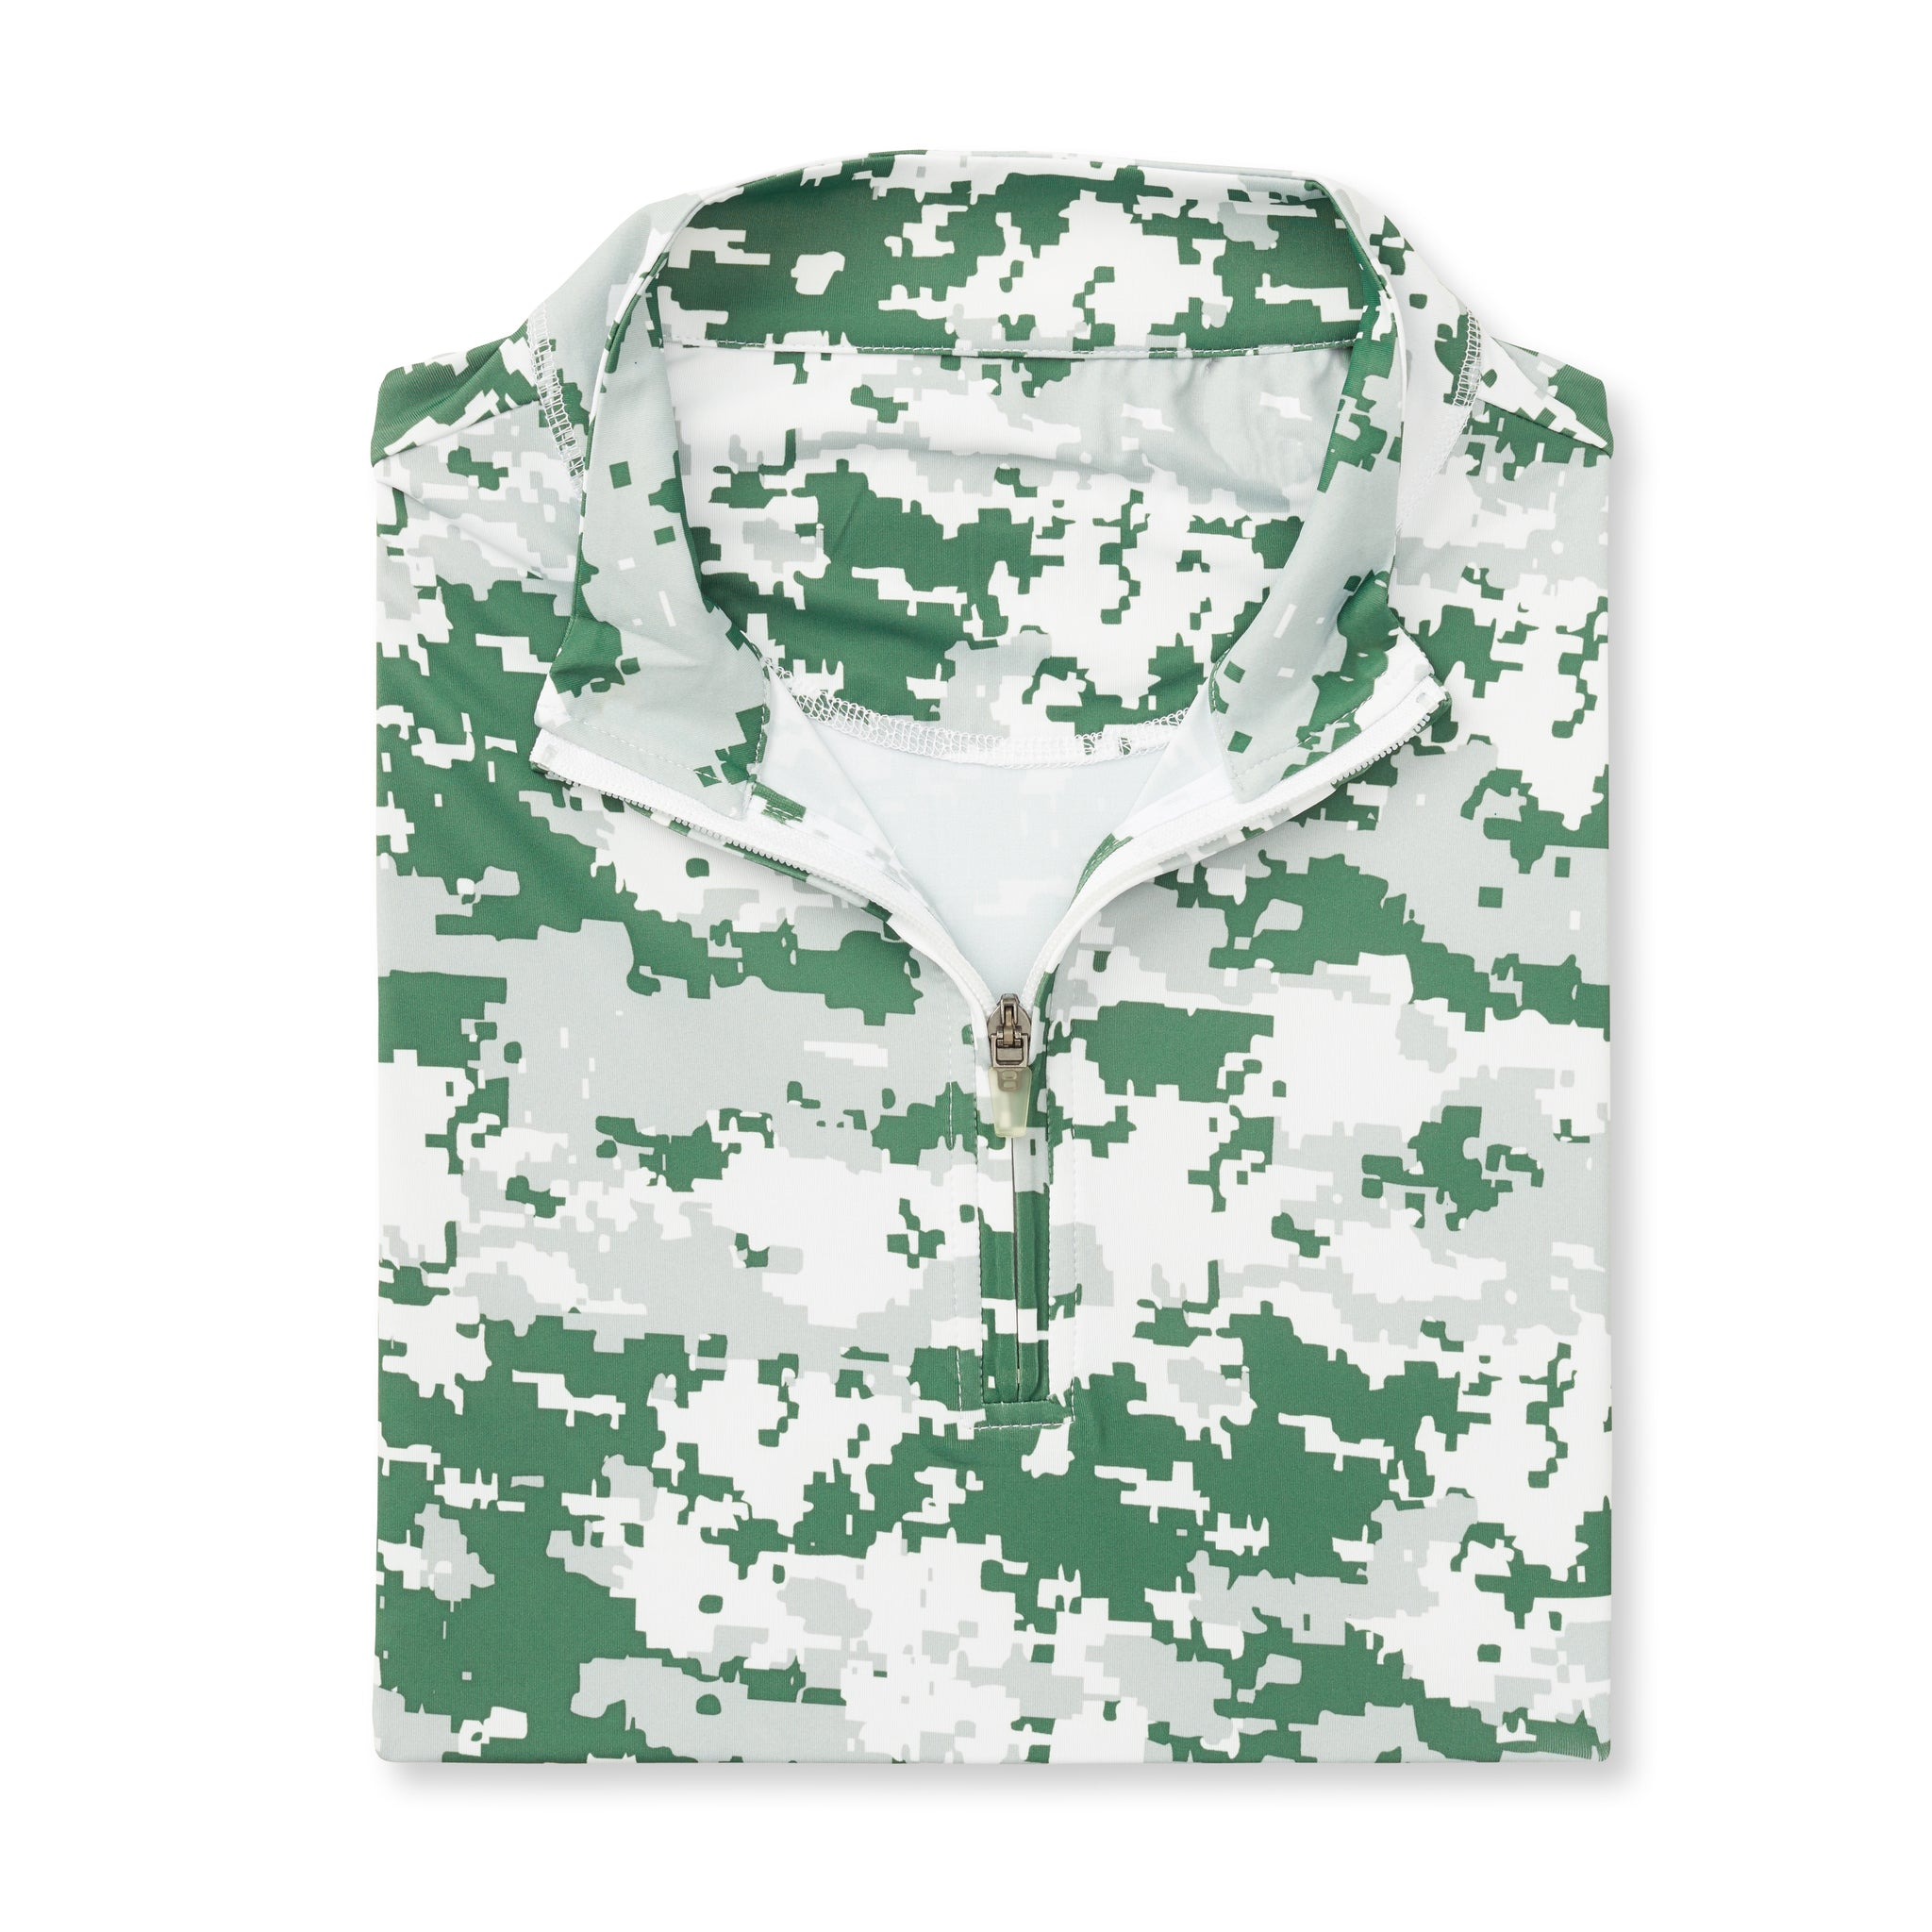 THE PULIDO DIGITAL CAMO HALF ZIP PULLOVER - Pine IS46005